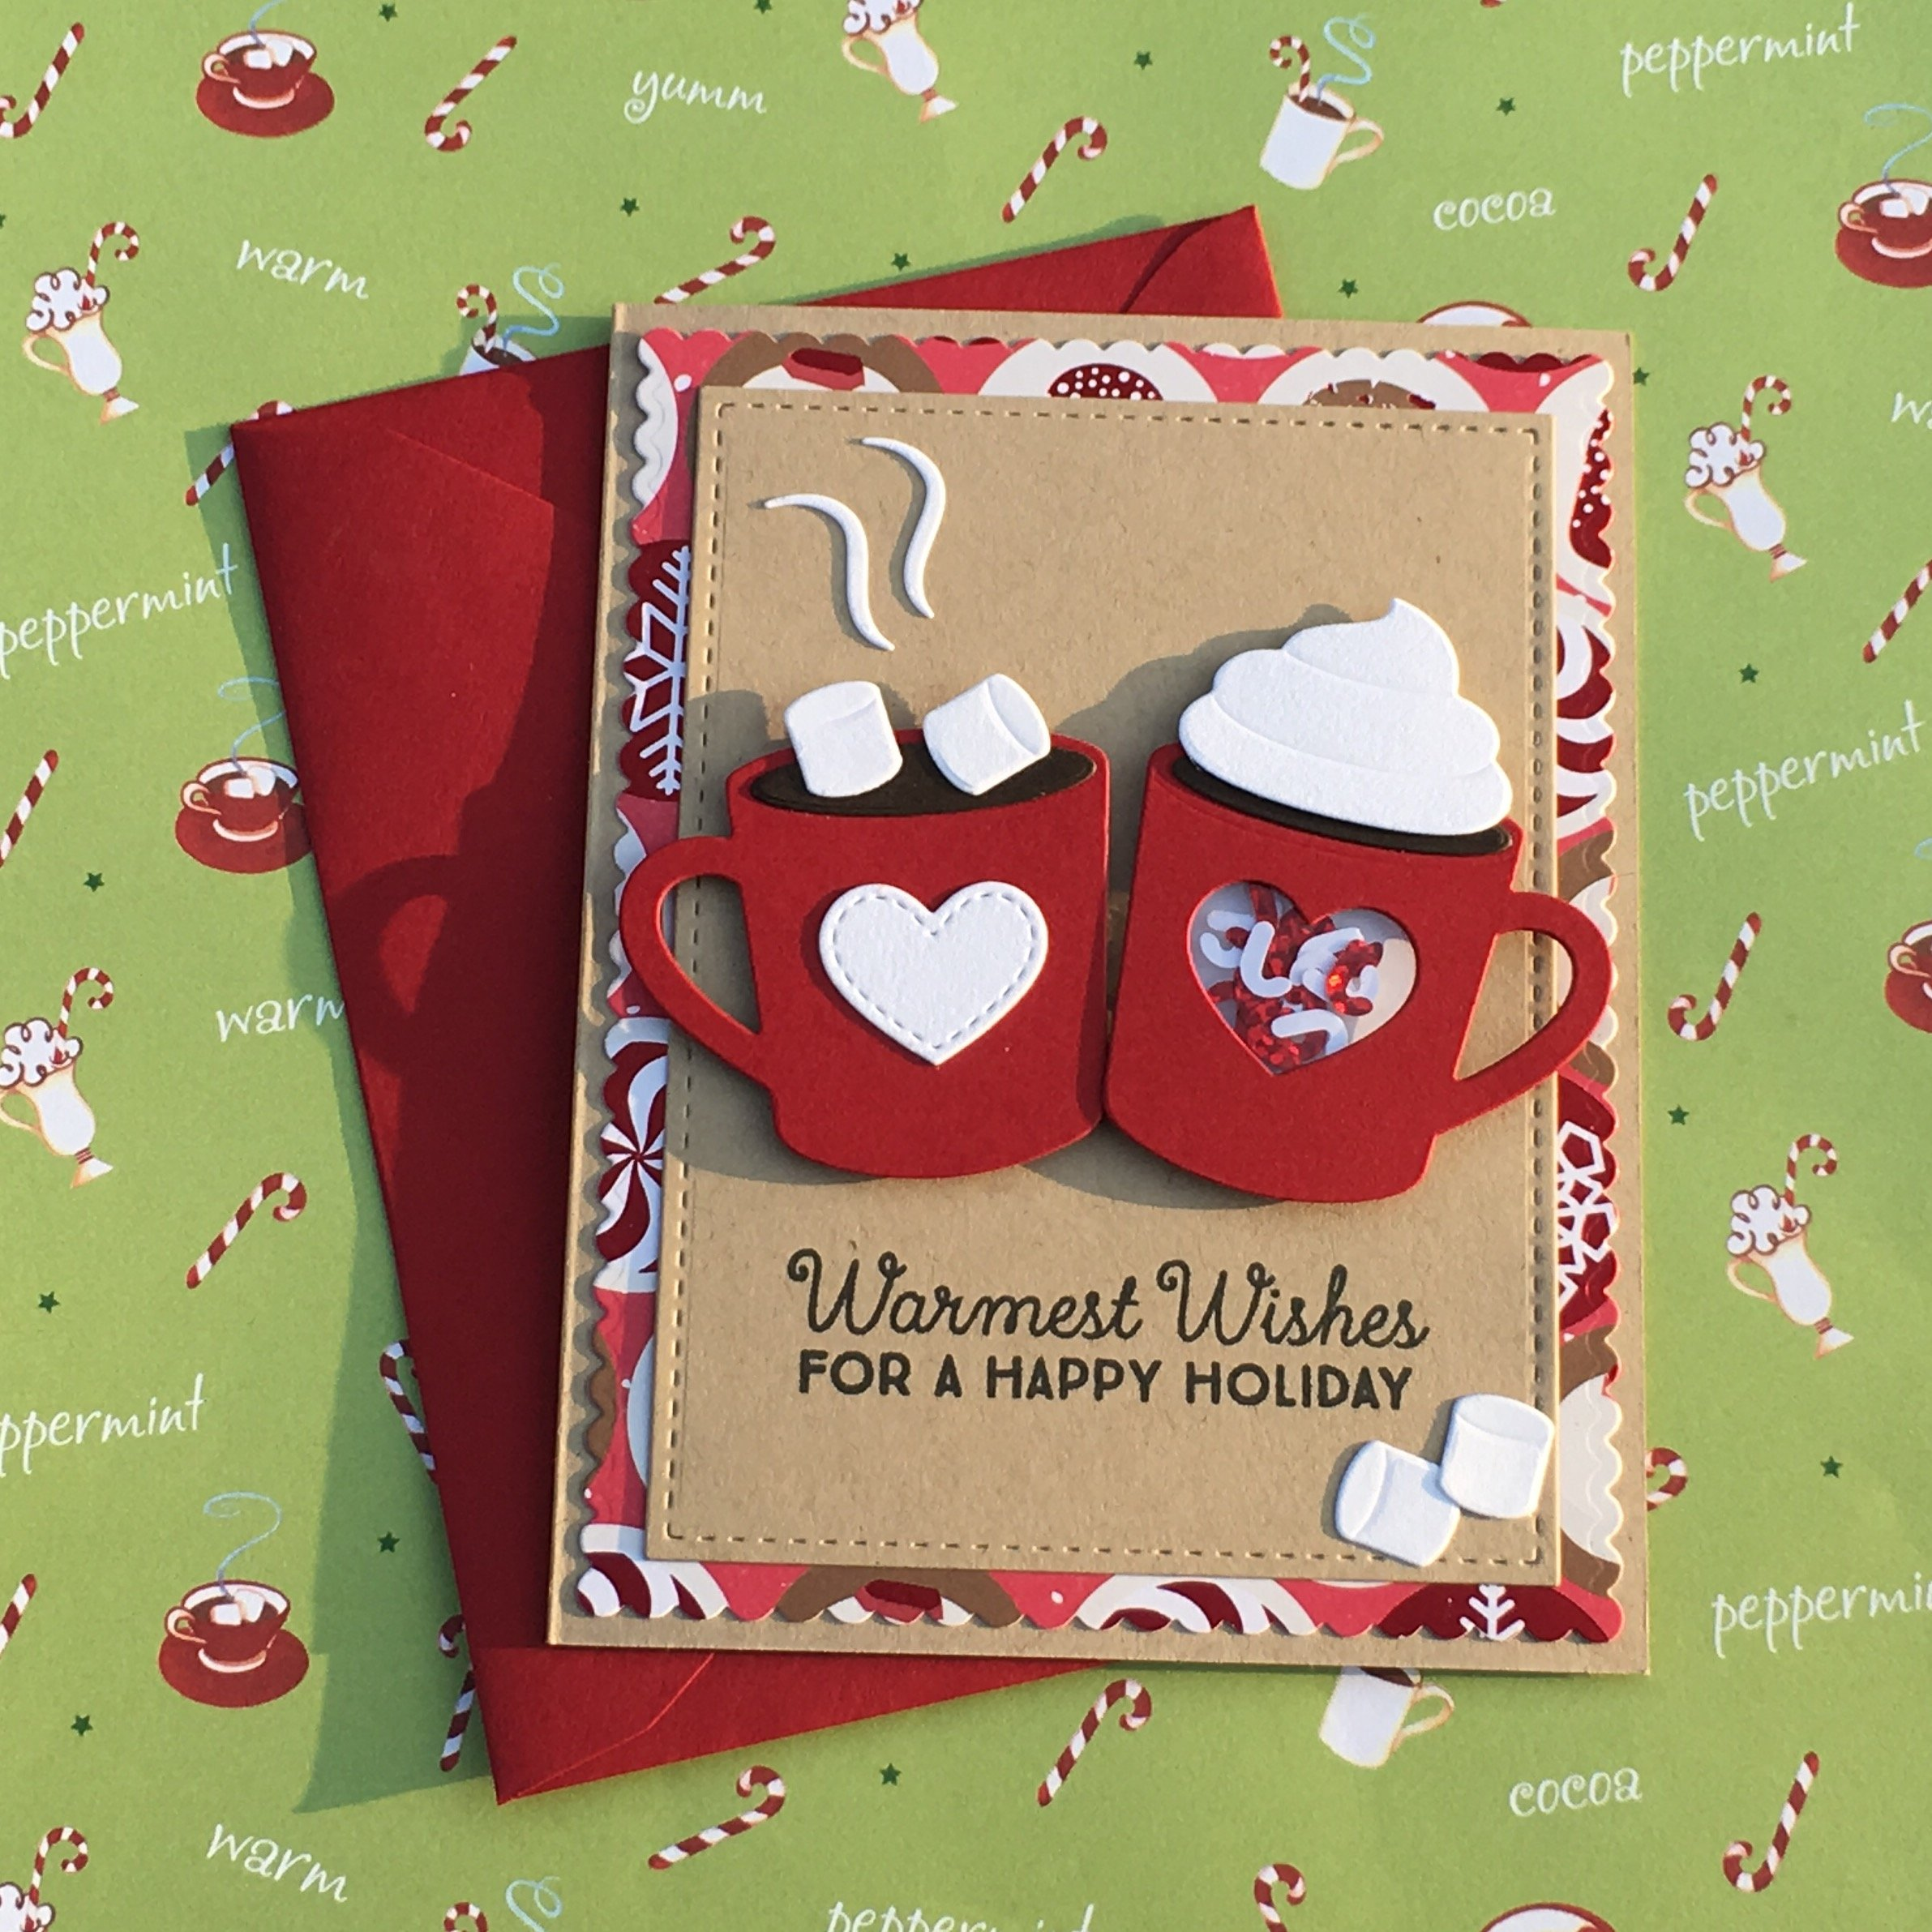 Hot cocoa card by Queeniooos